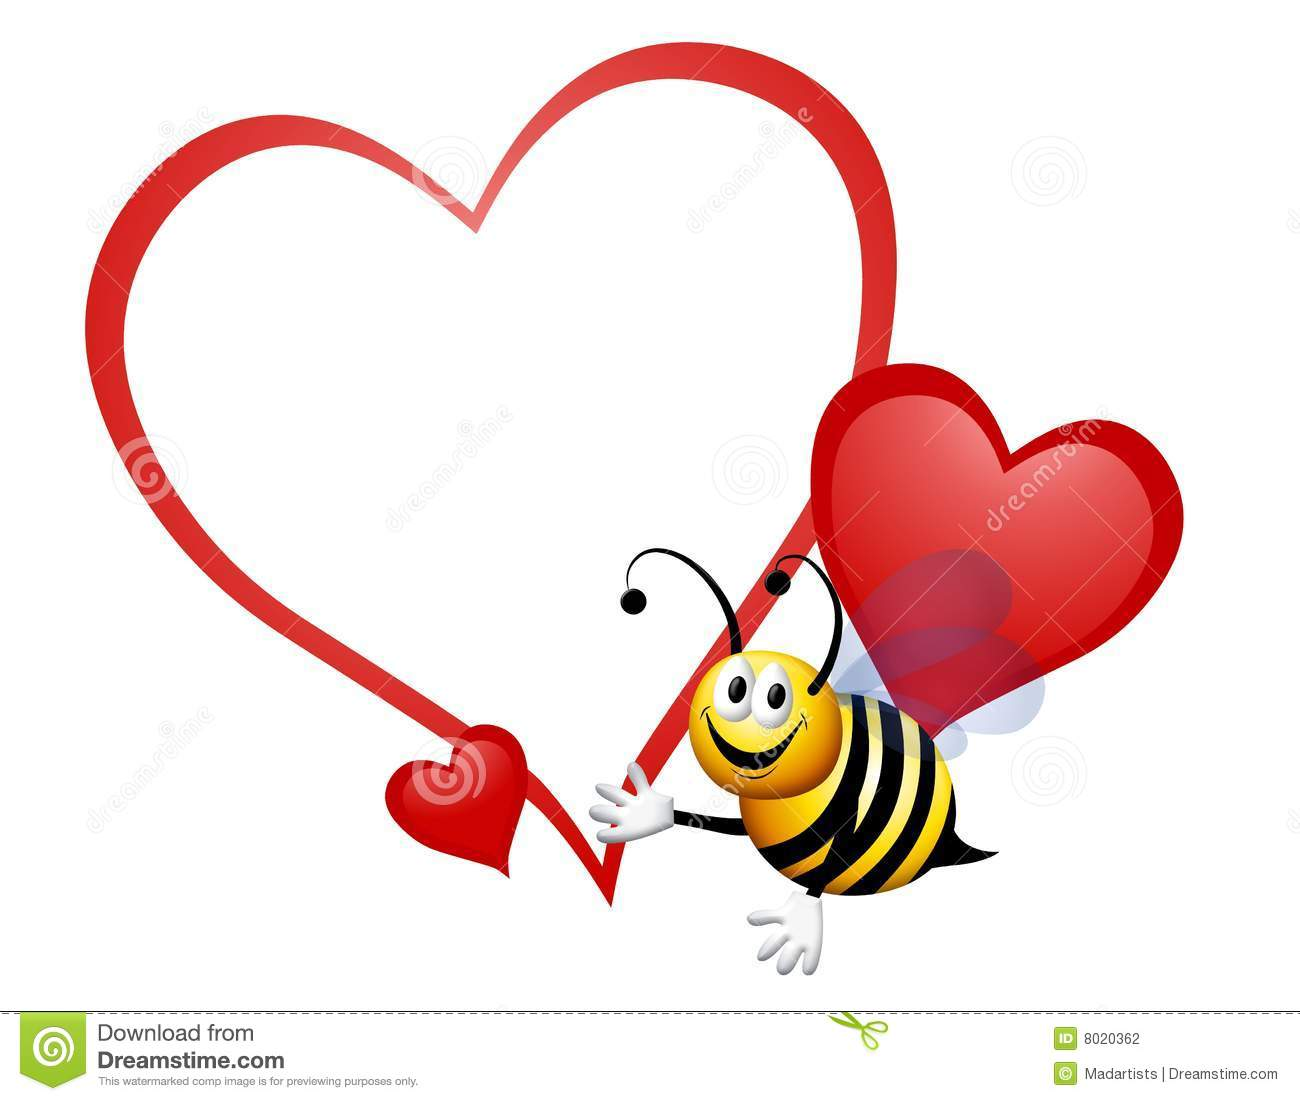 Cute bumblebee valentine clipart jpg library library Cute bumblebee valentine clipart - ClipartFest jpg library library